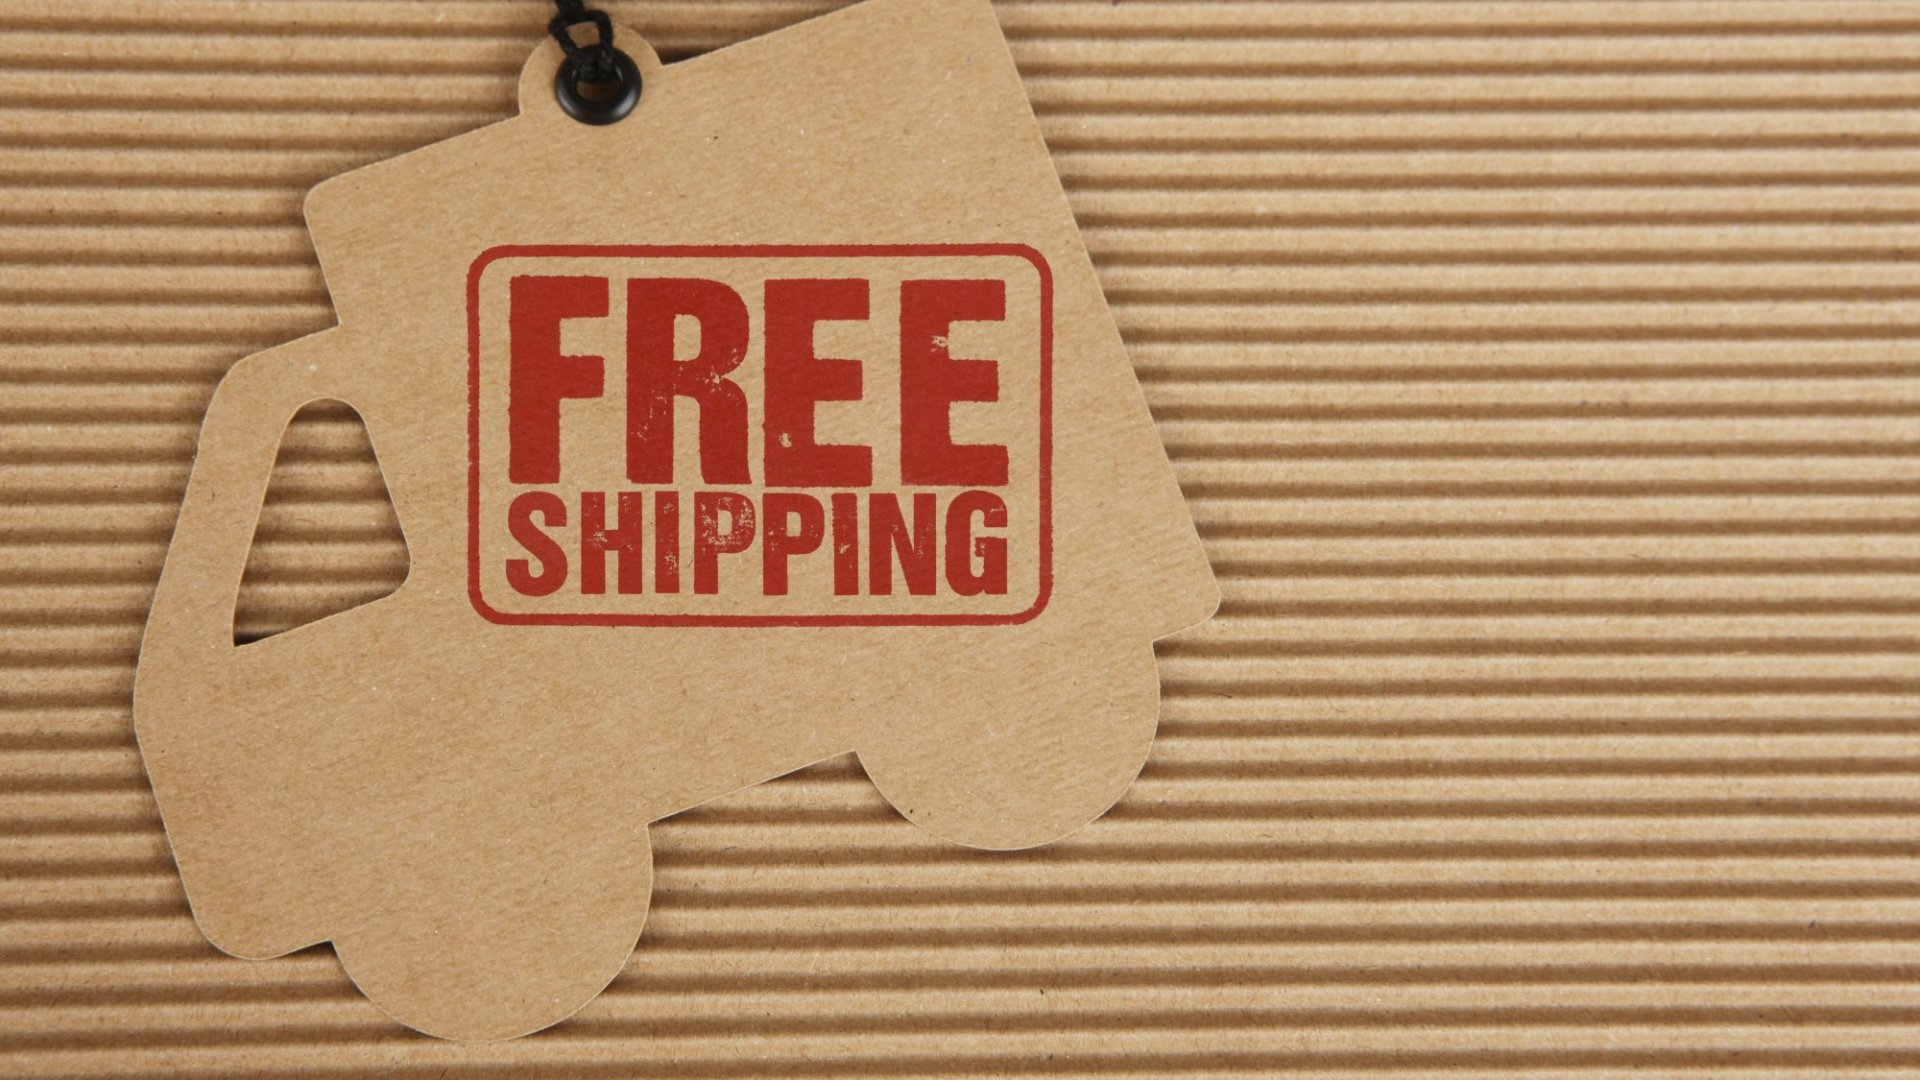 Free Shipping and In-Store Pickup Essential for Holiday Marketing in 2017